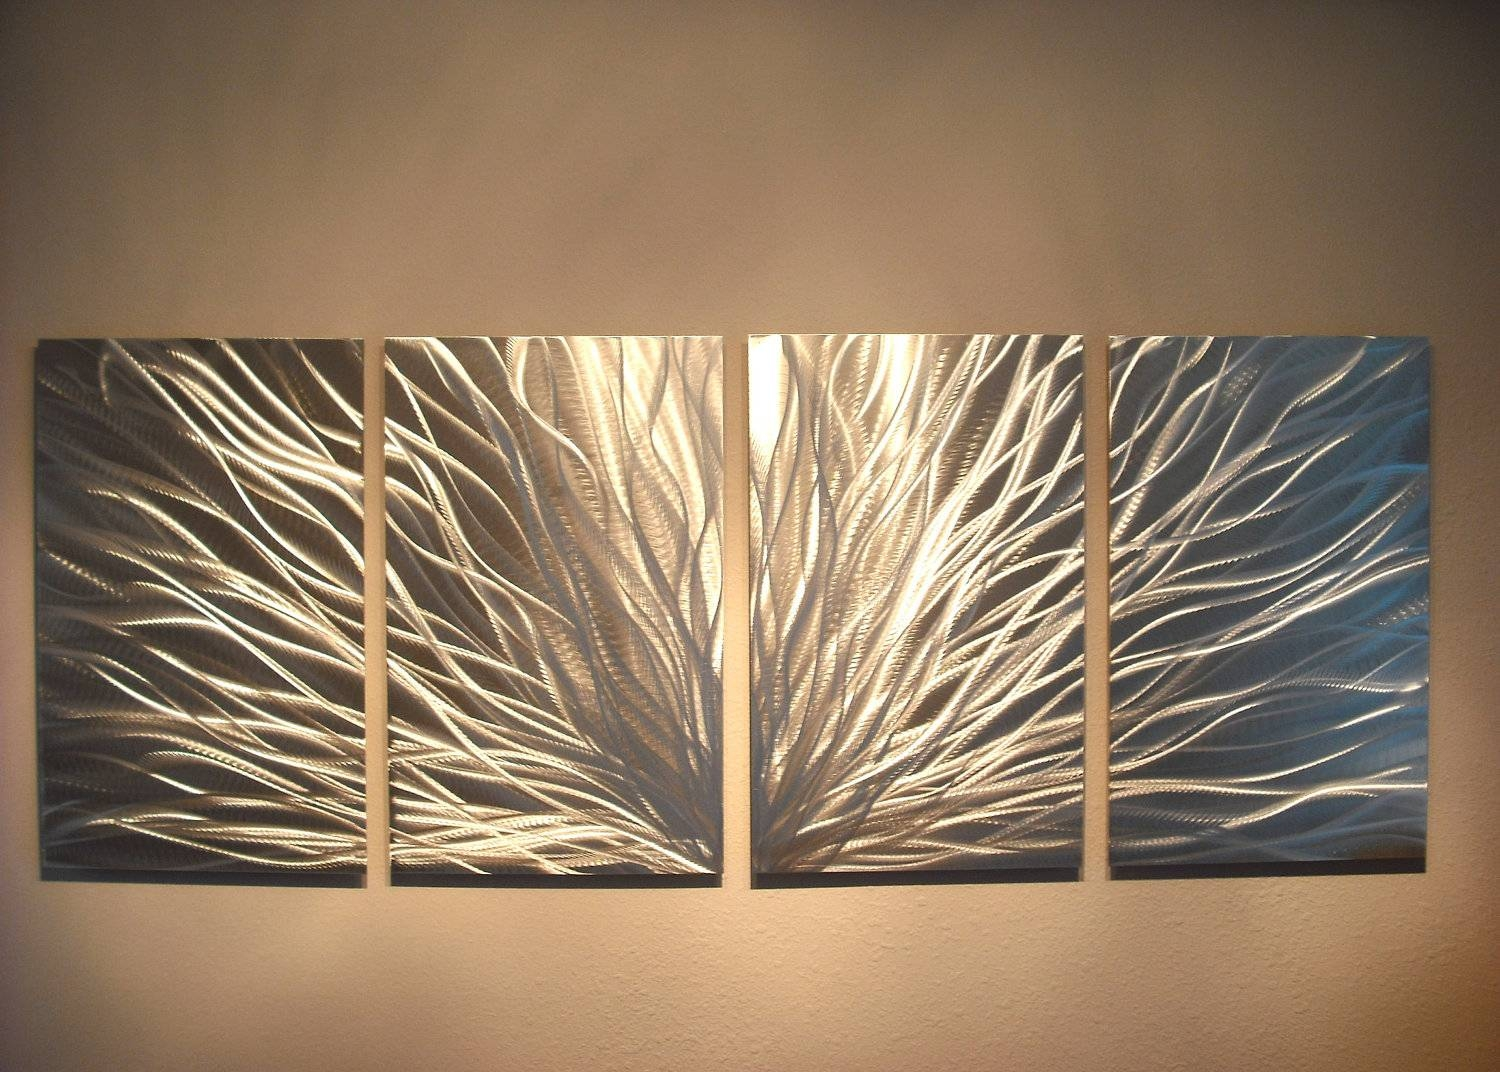 Radiance – Abstract Metal Wall Art Contemporary Modern Decor With Regard To 2018 Faux Metal Wall Art (View 15 of 20)